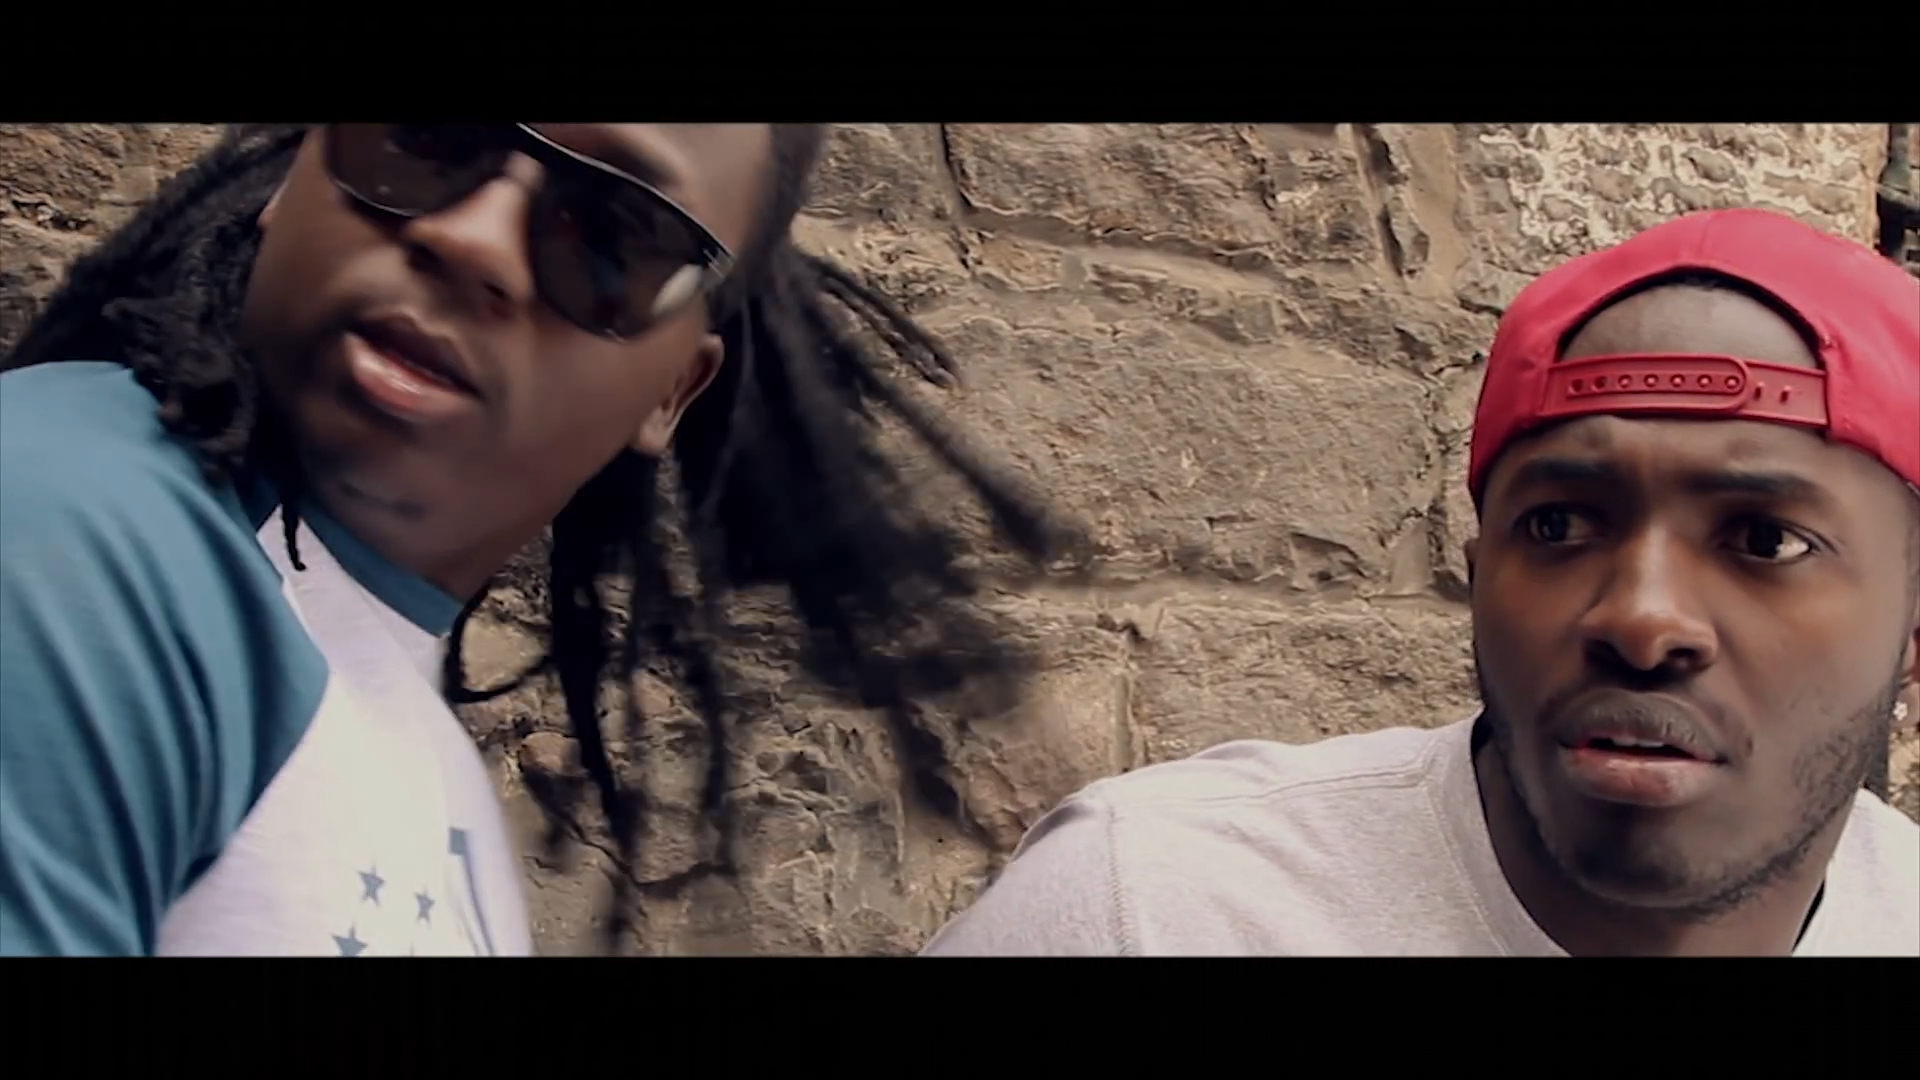 Screenshotter RudeBoneBadGuyOfficialVideo 0'14""